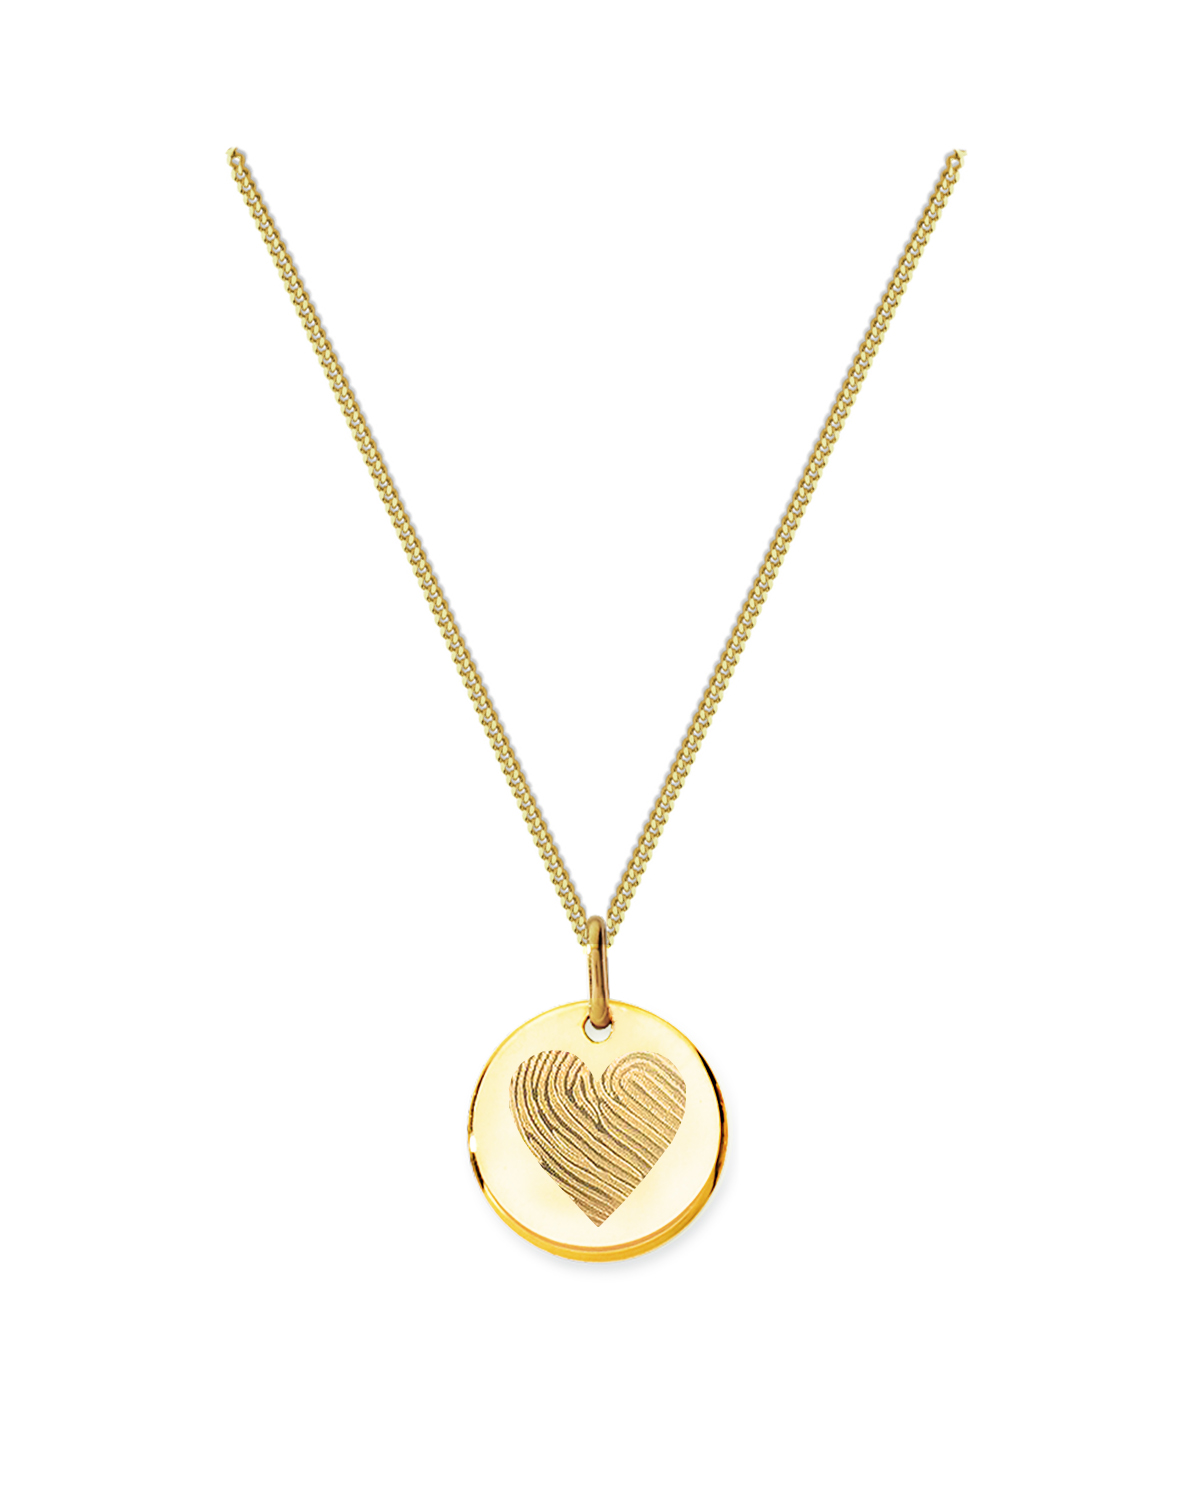 18K Heart Necklace